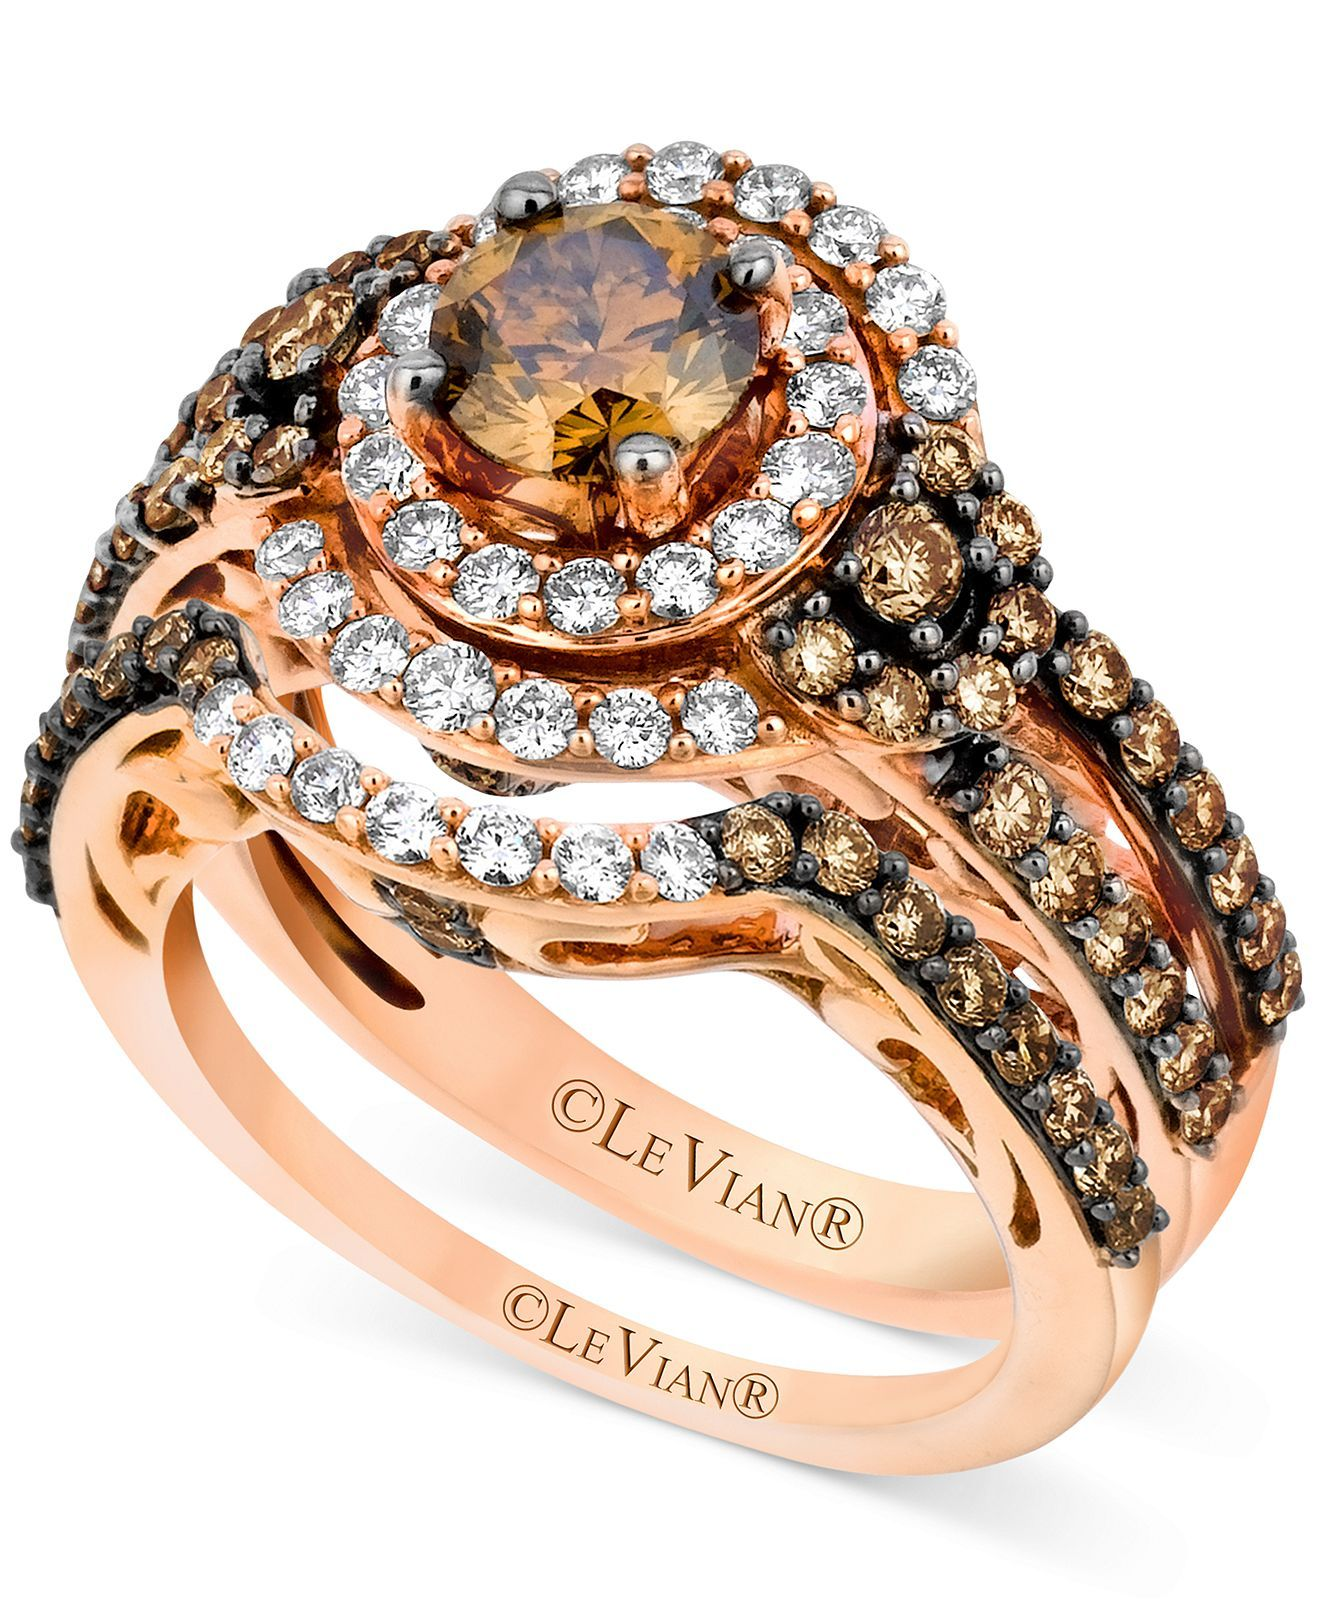 le vian wedding bands Shop for Le Vian Bridal Set Chocolate Diamond ct and White Diamond ct Ring Set in Rose Gold by LeVian at ShopStyle